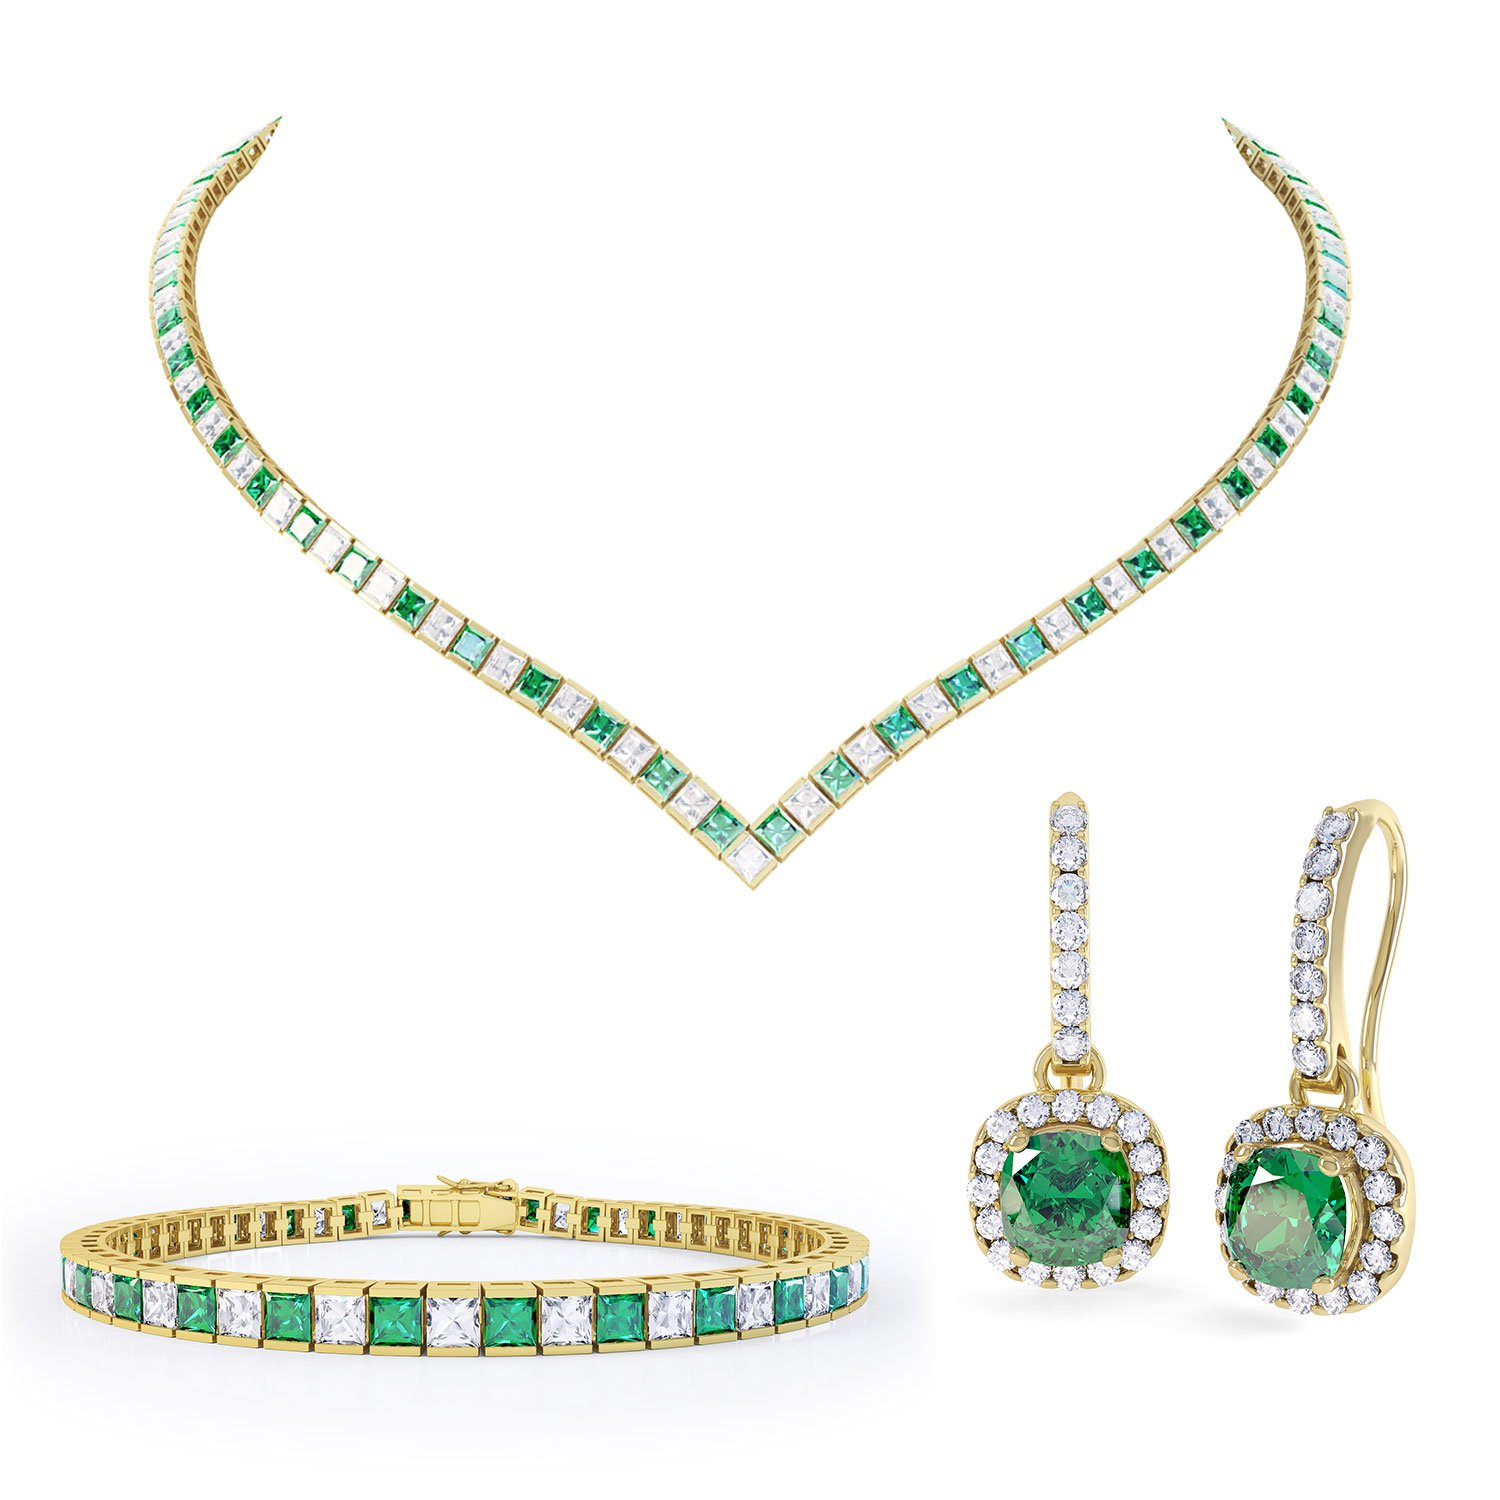 Princess Emerald 18ct Gold Vermeil Jewelry Set